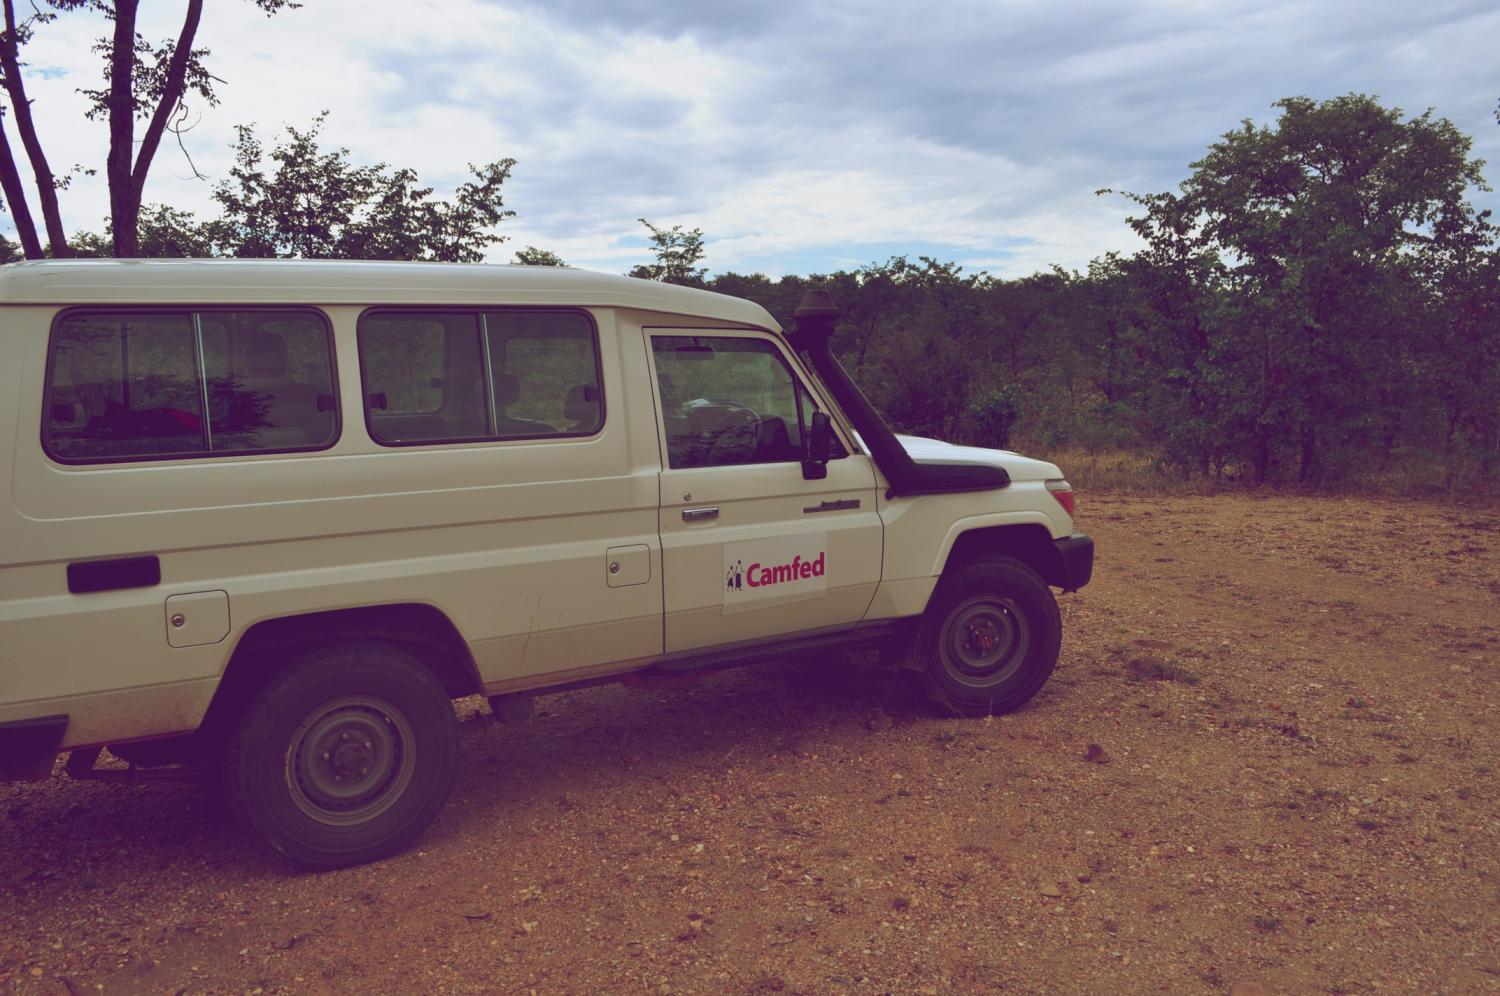 Our trusty Camfed Land Rover